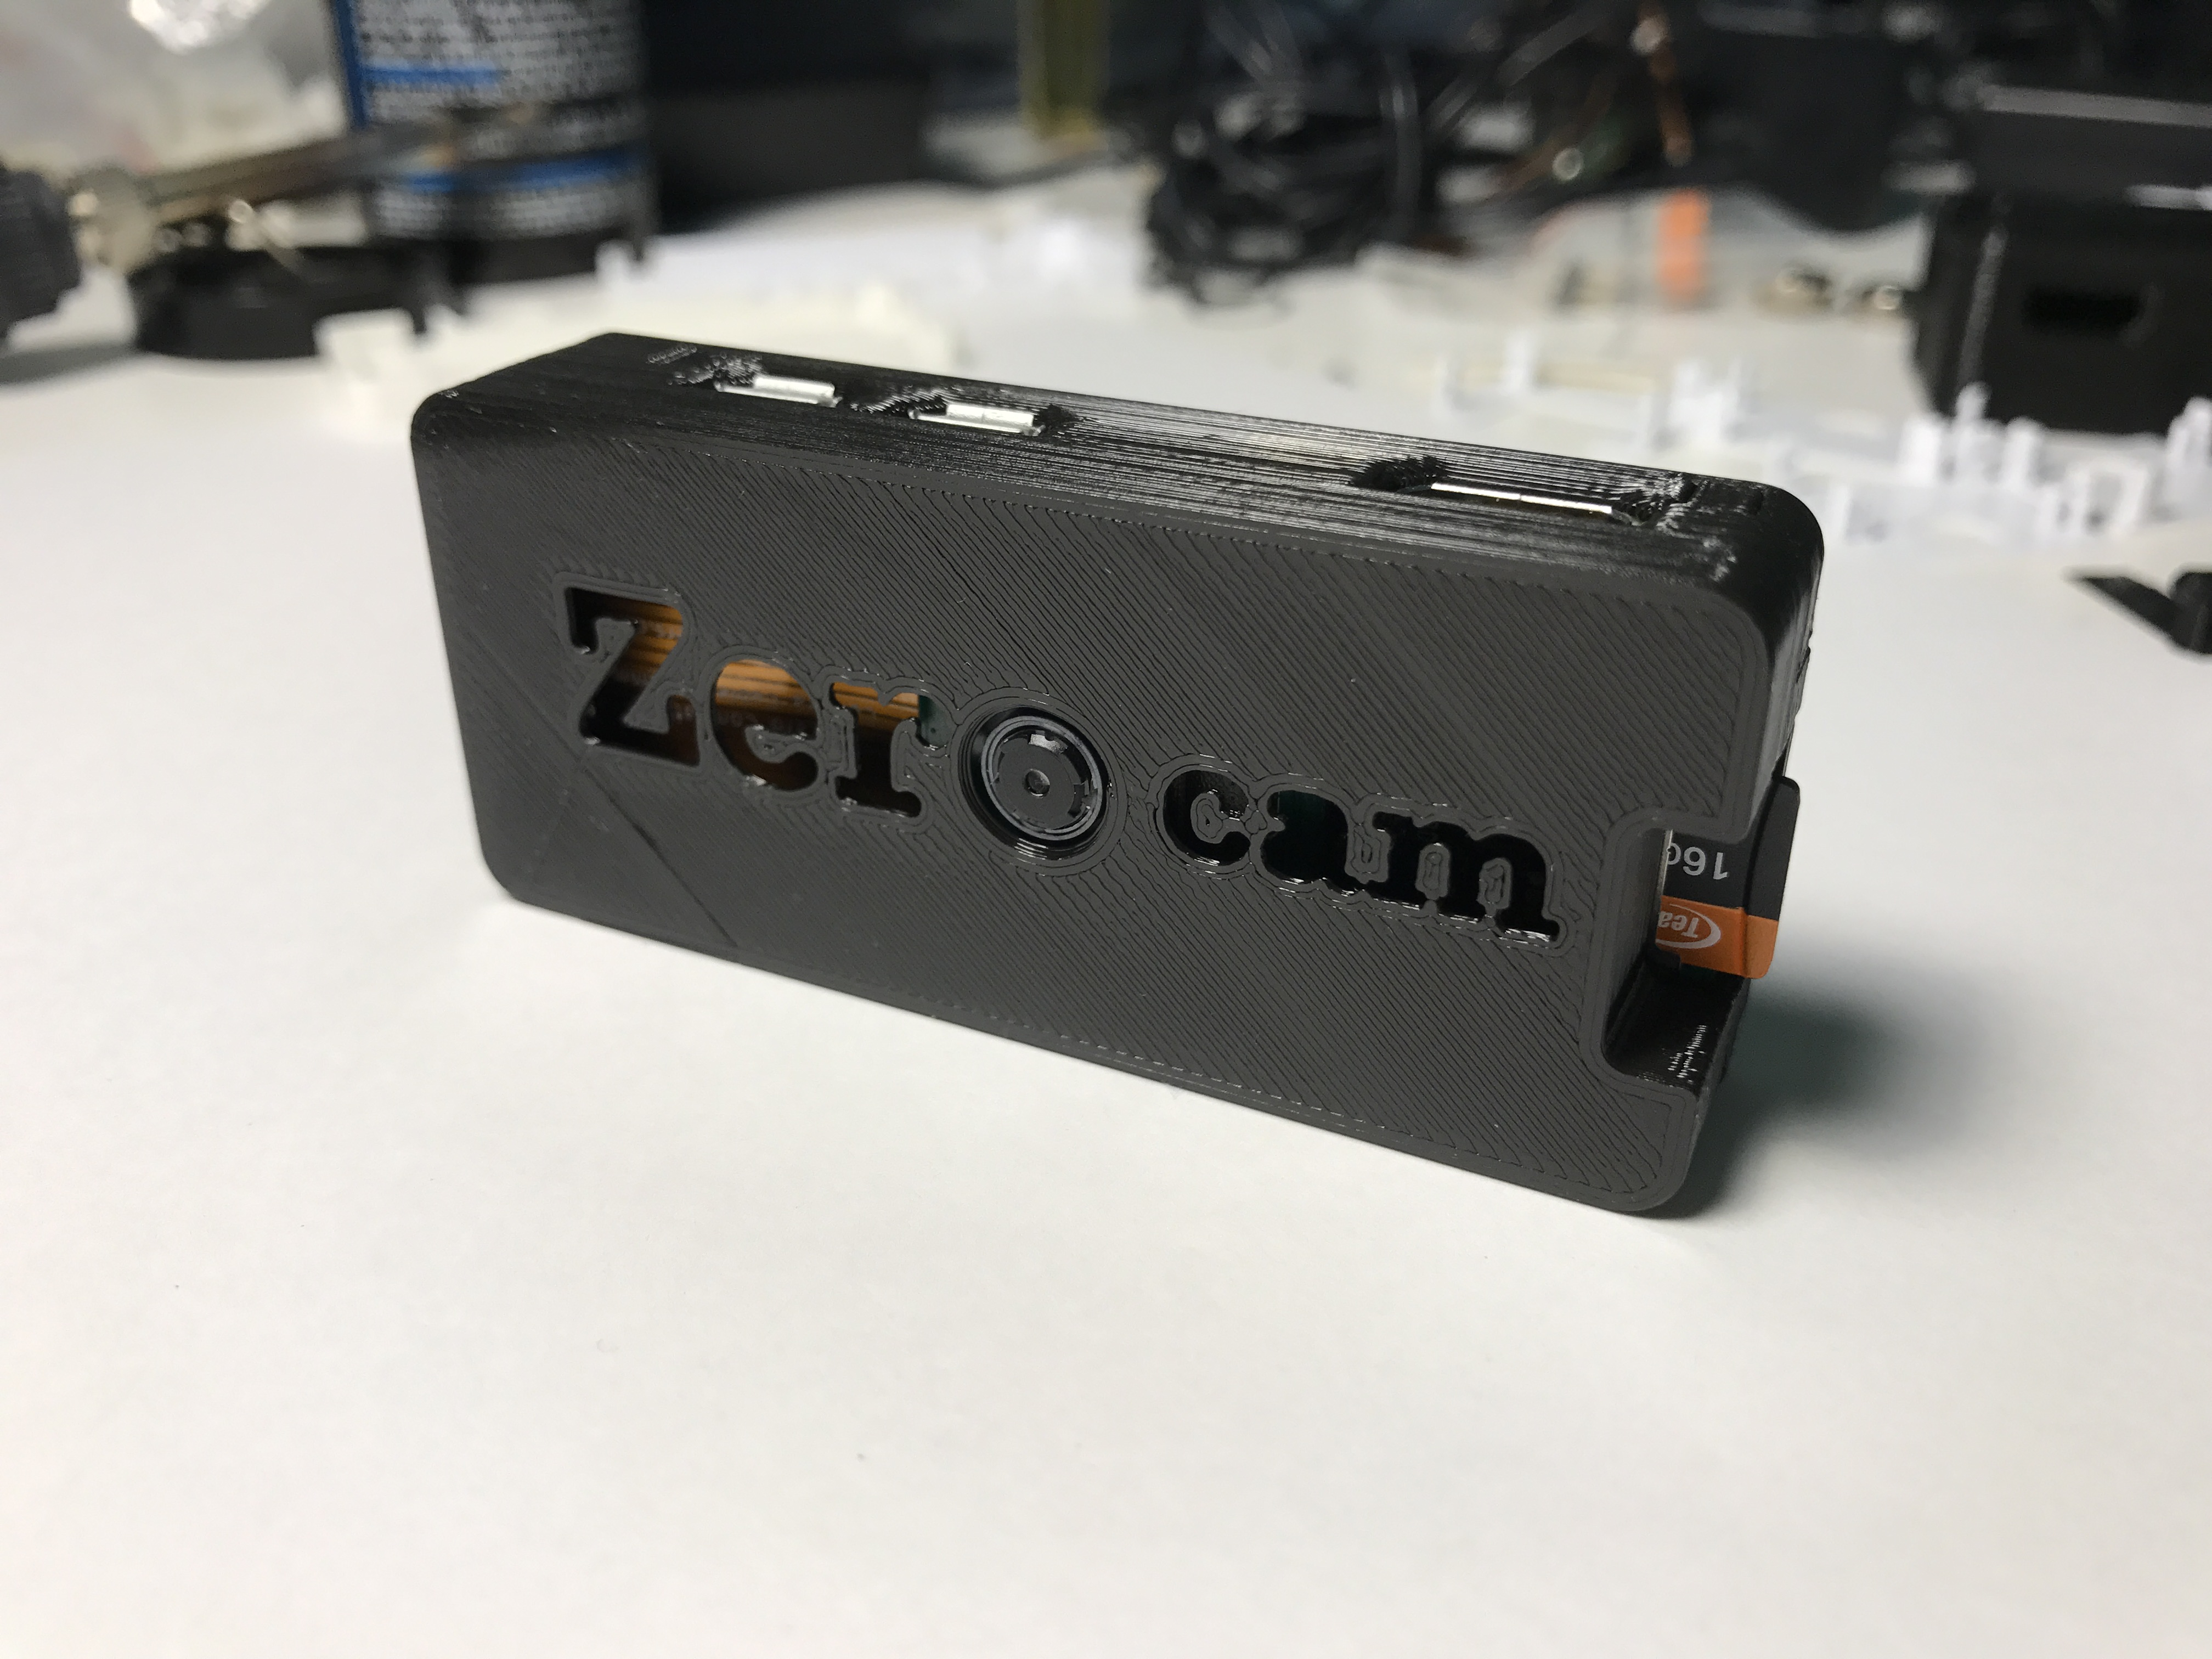 Raspberry Pi Zero camera case